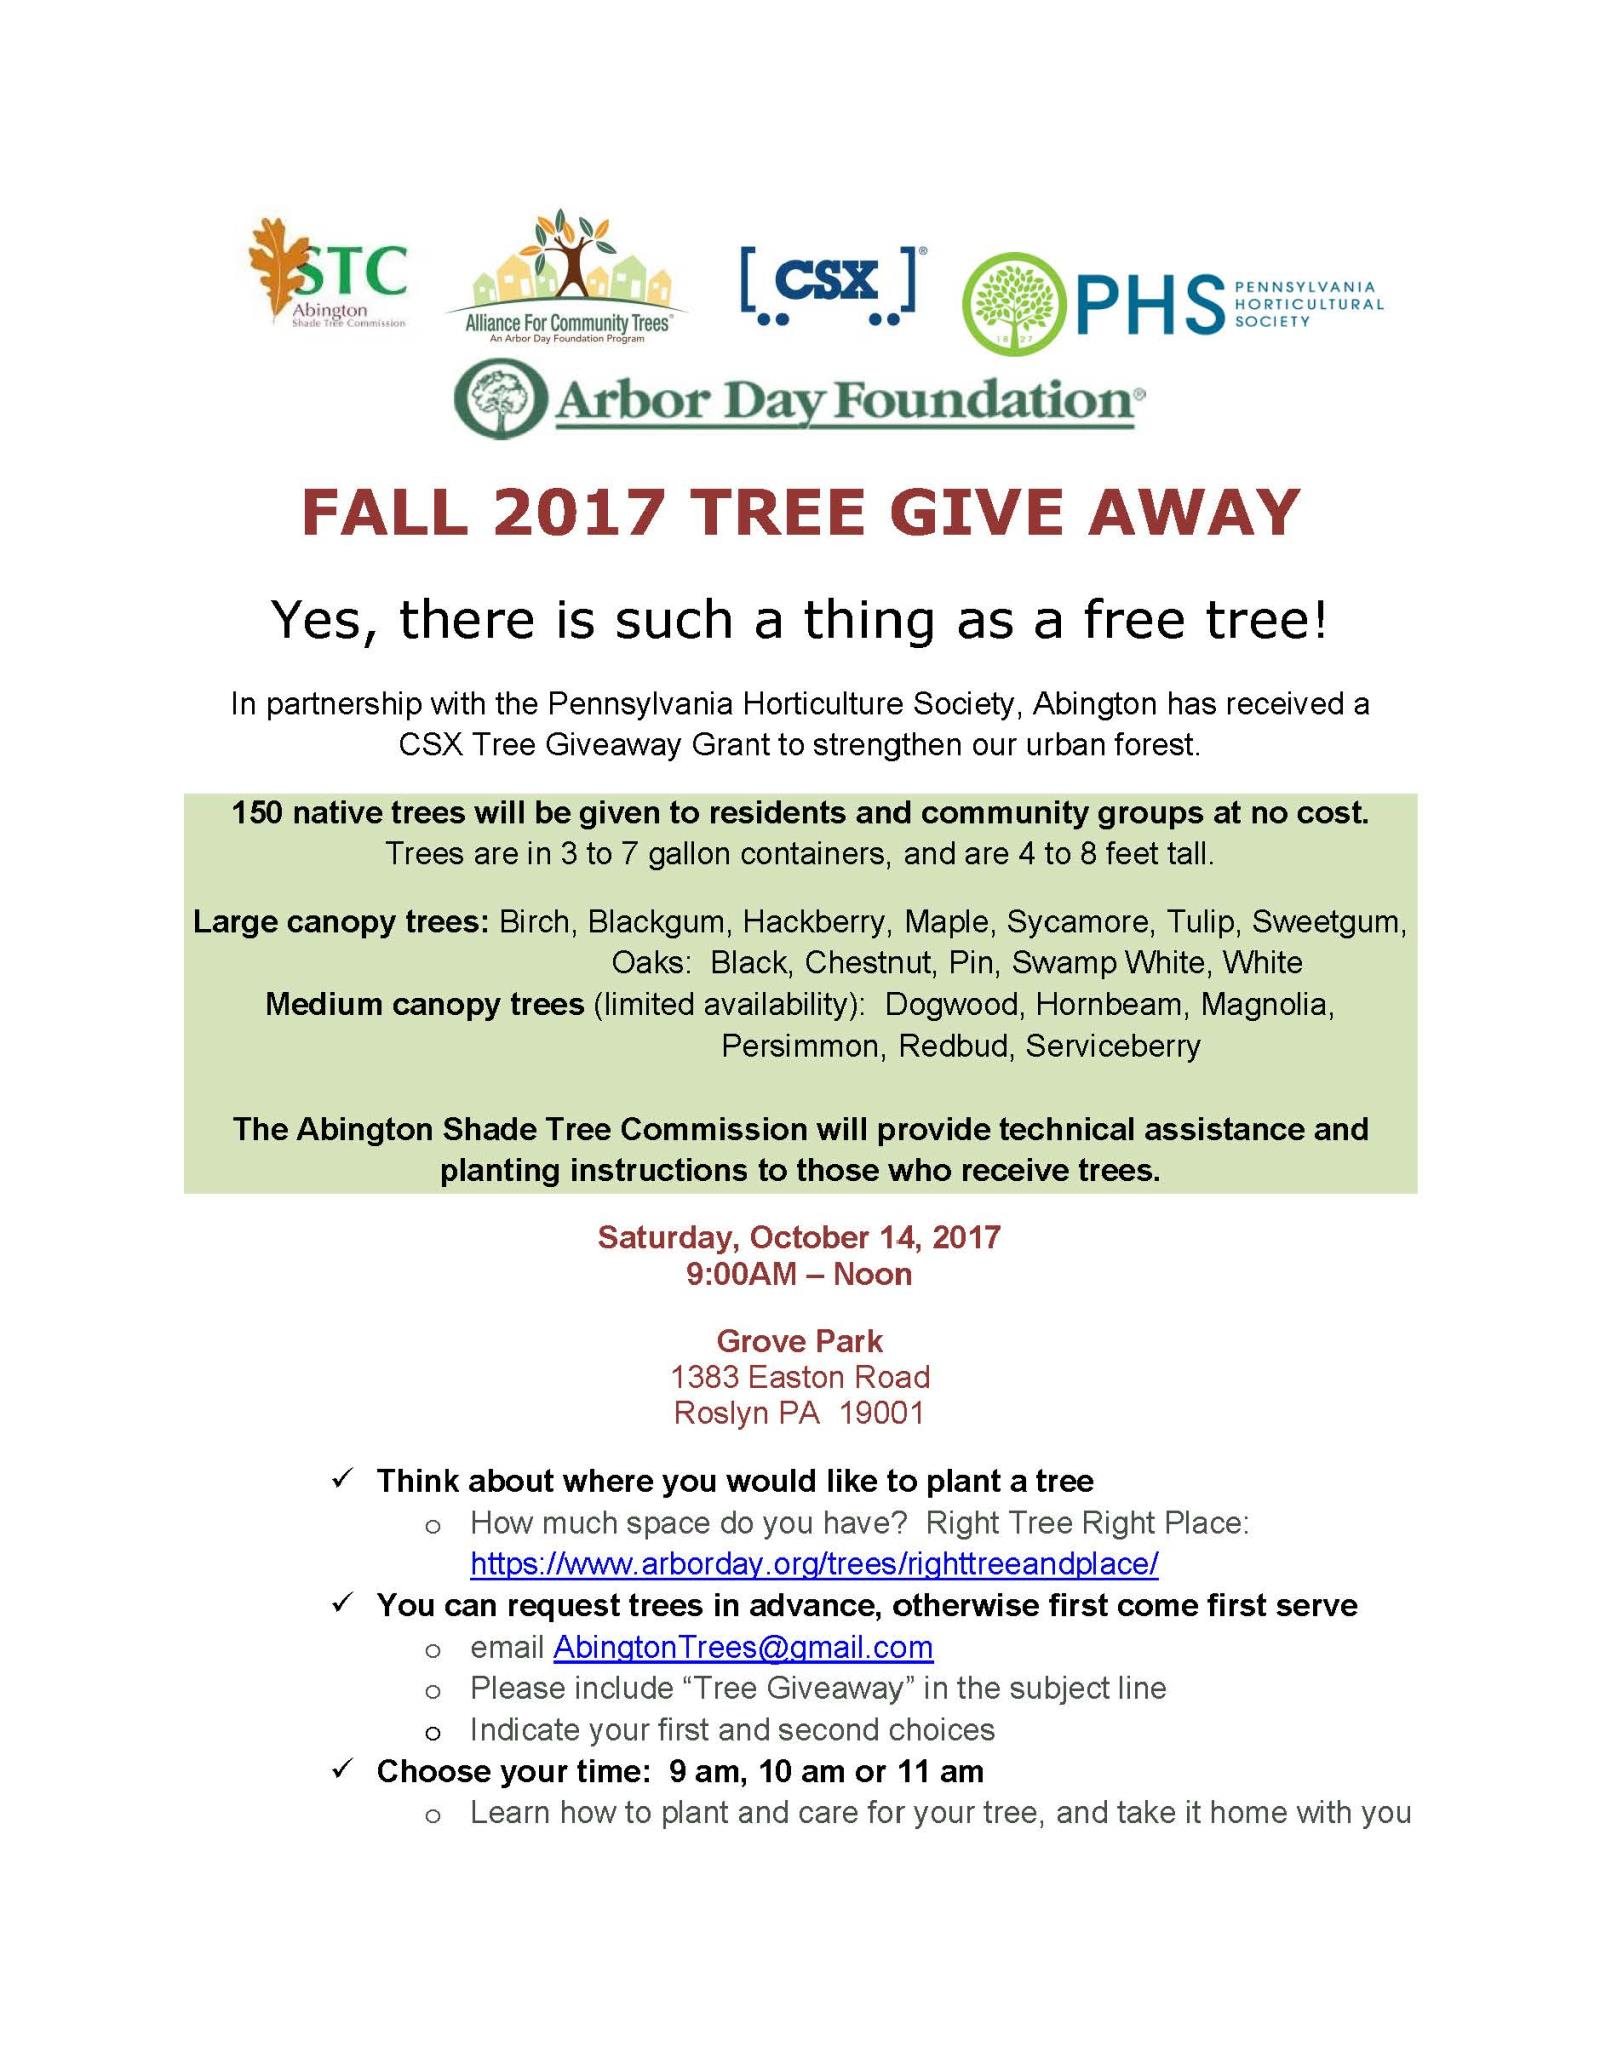 FALL 2017 TREE GIVE AWAY (002)